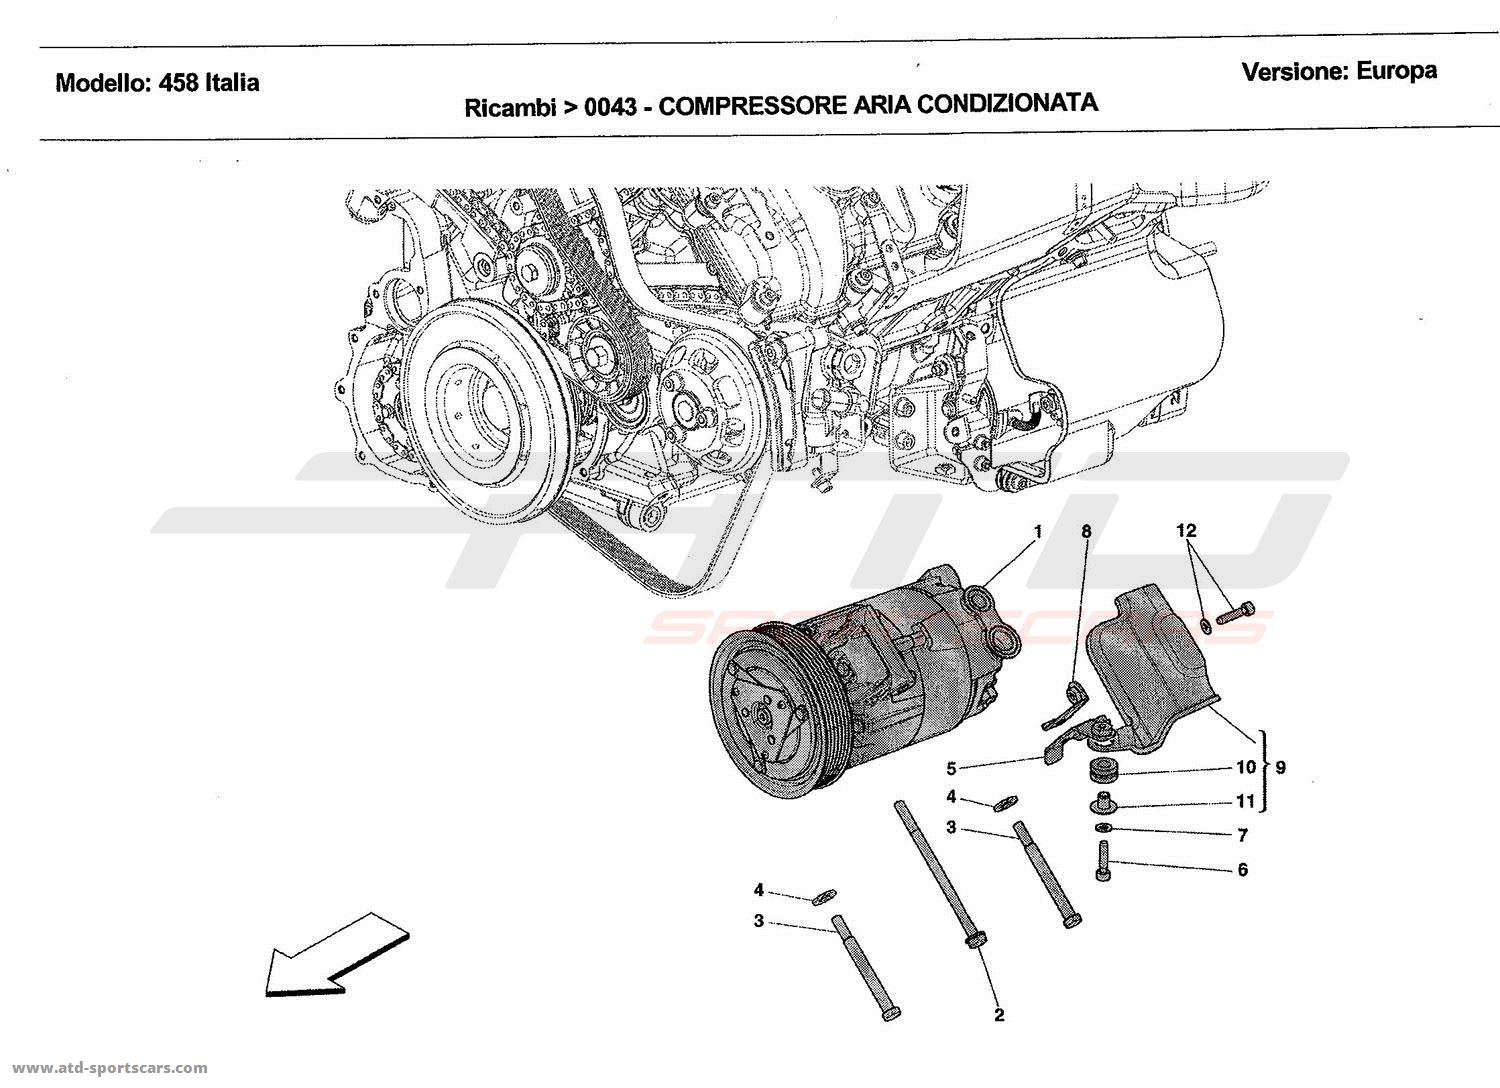 British Racing Motors H 16 Flat 16 Engine Diagram Photo 370780 moreover Fiat Spider Engine V6 as well V10 Engine Cars in addition Brm furthermore Aston Martin Vantage Wiring Diagram. on lamborghini v12 engine